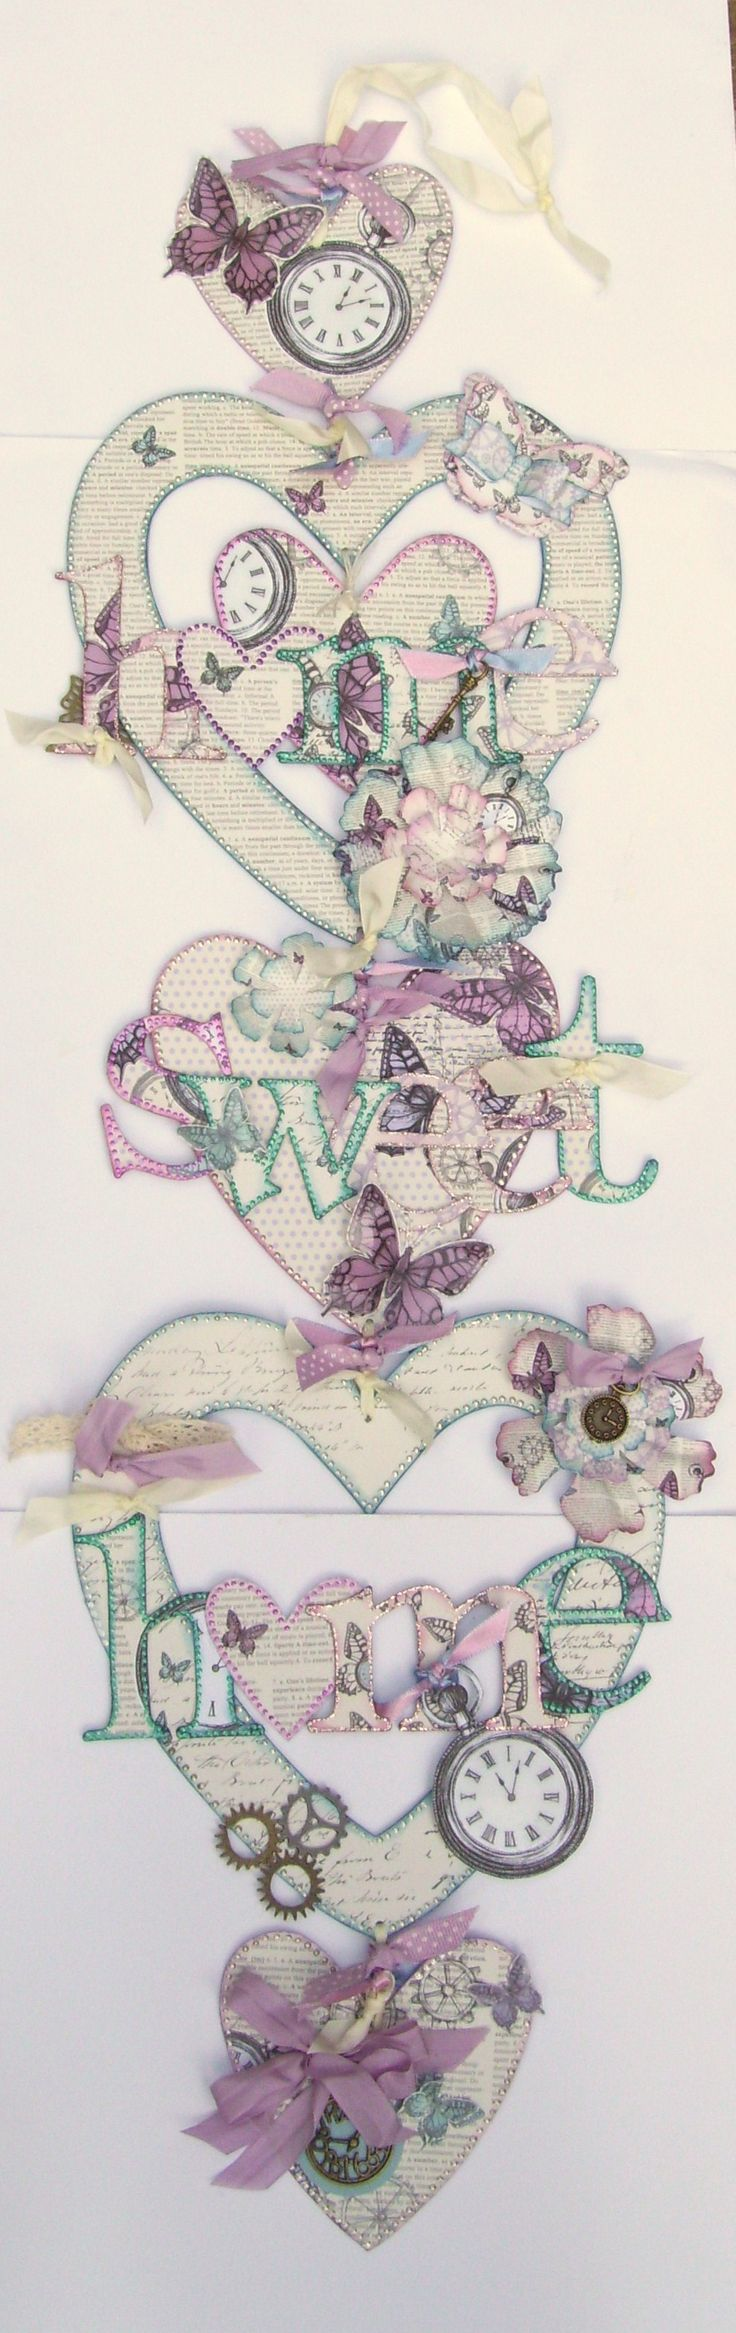 Home decor project using chipboard hearts, chipboard letters, ribbons and charms.  Wall hanging designed by Julie Hickey